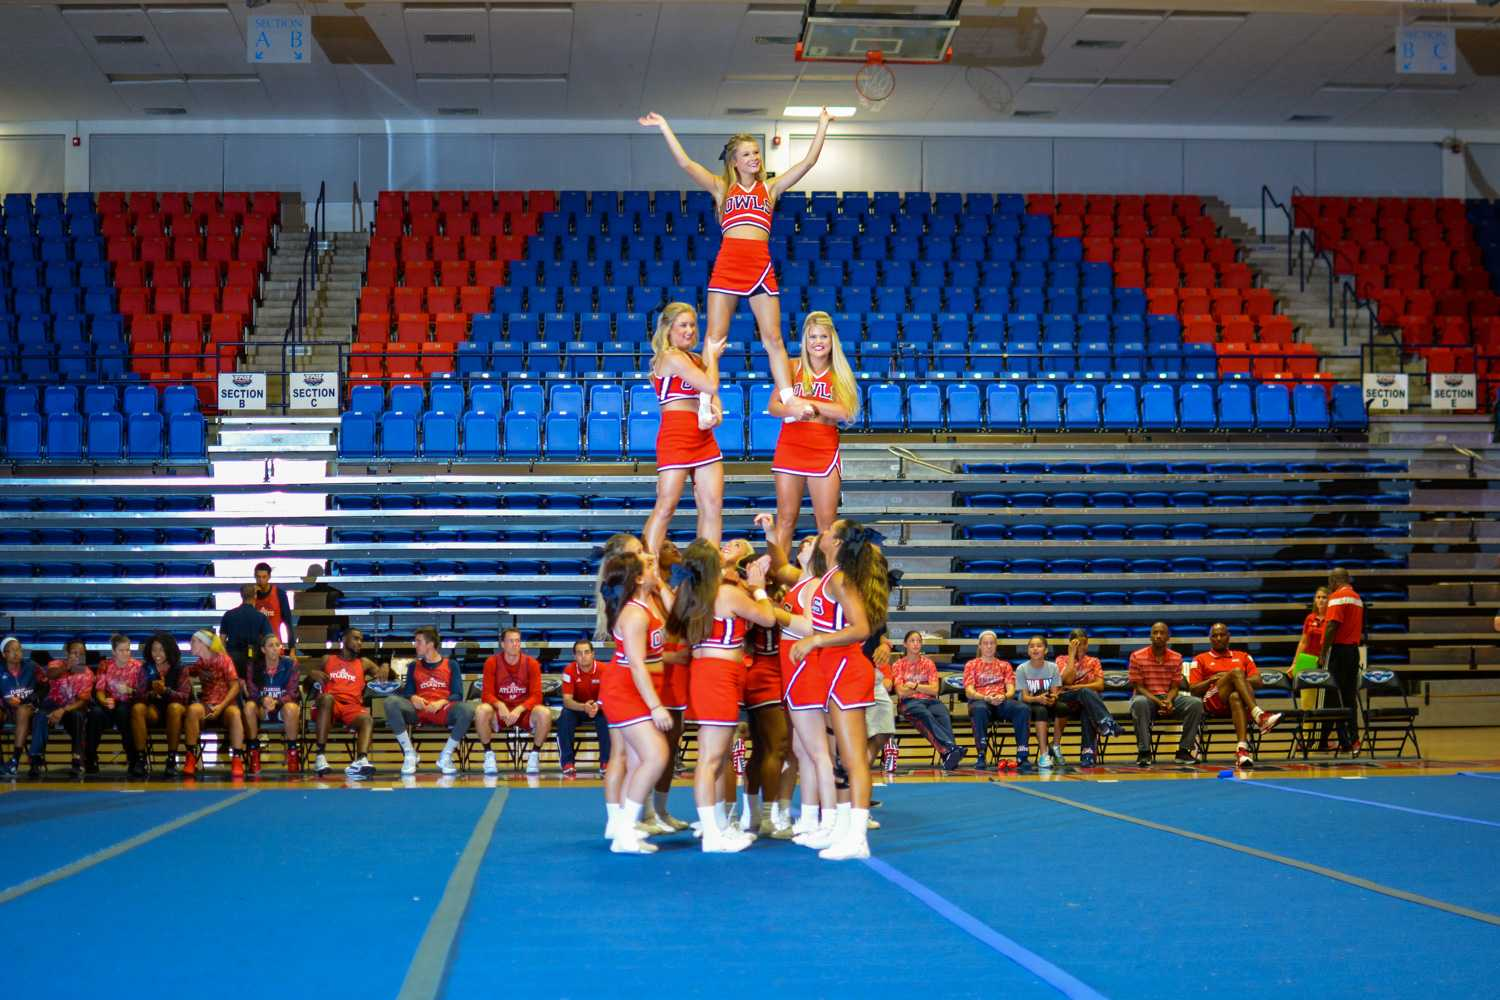 FAU Cheer performs a routine at the Red Hot Madness event on Tuesday, Oct. 28. Emily Creighton | Features Editor